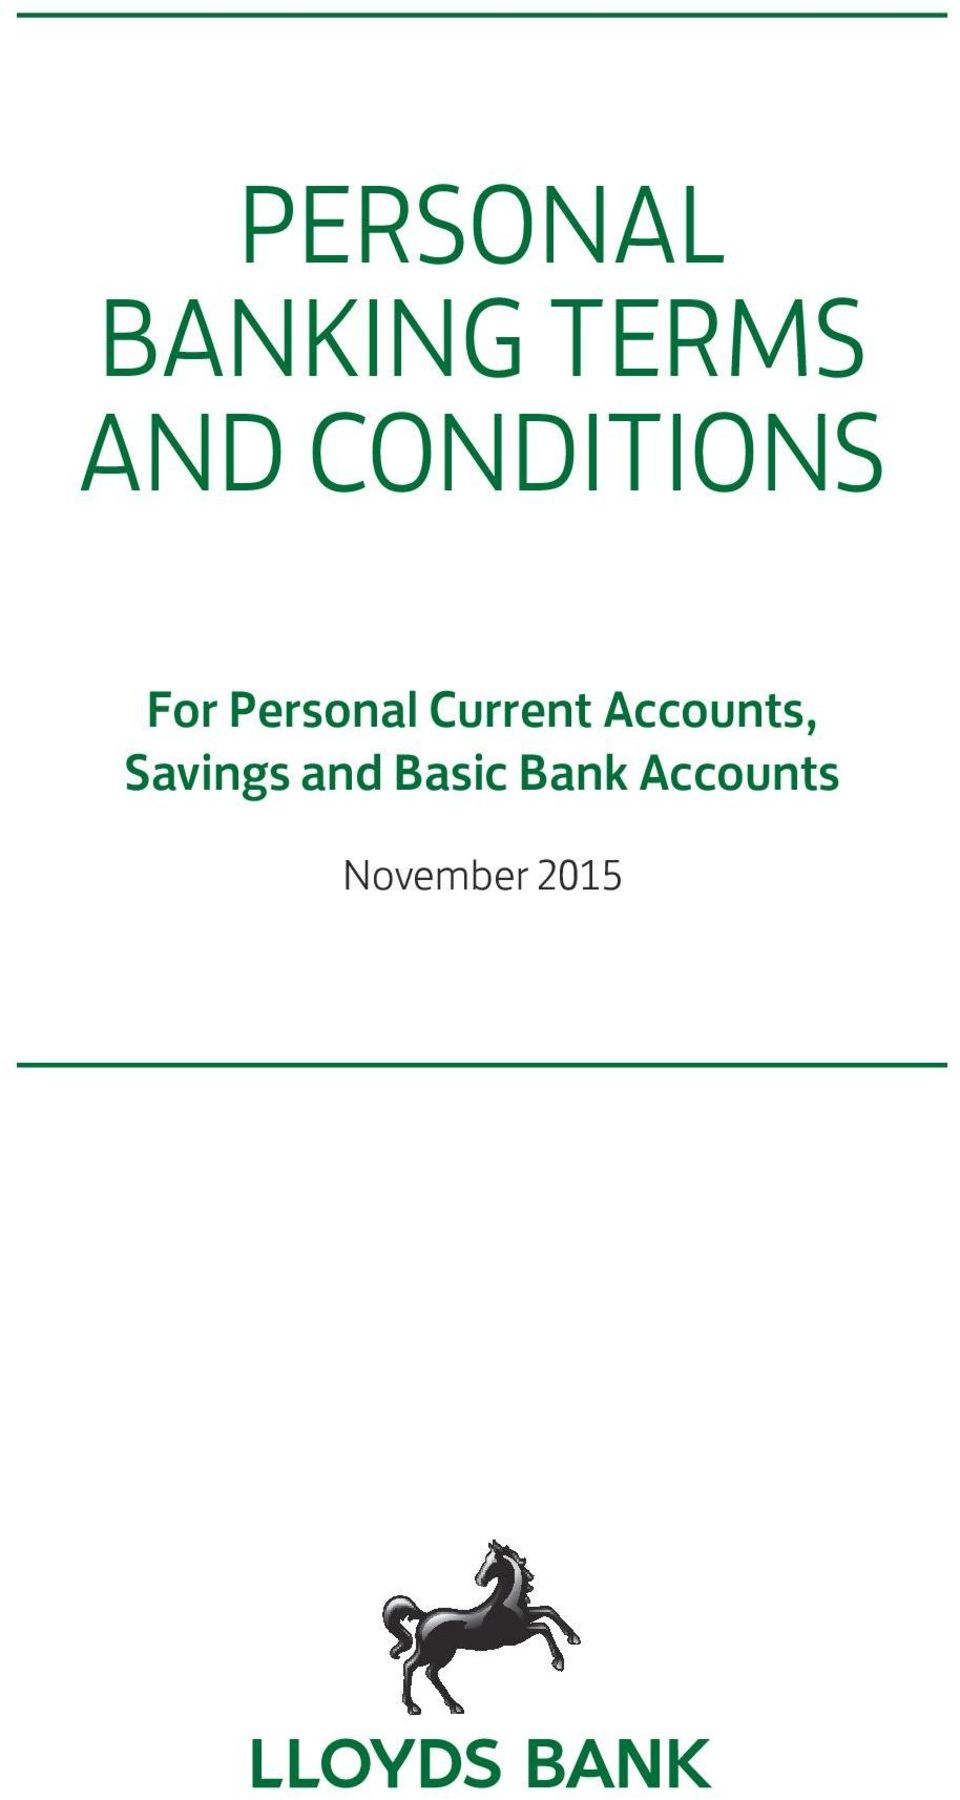 Current Accounts, Savings